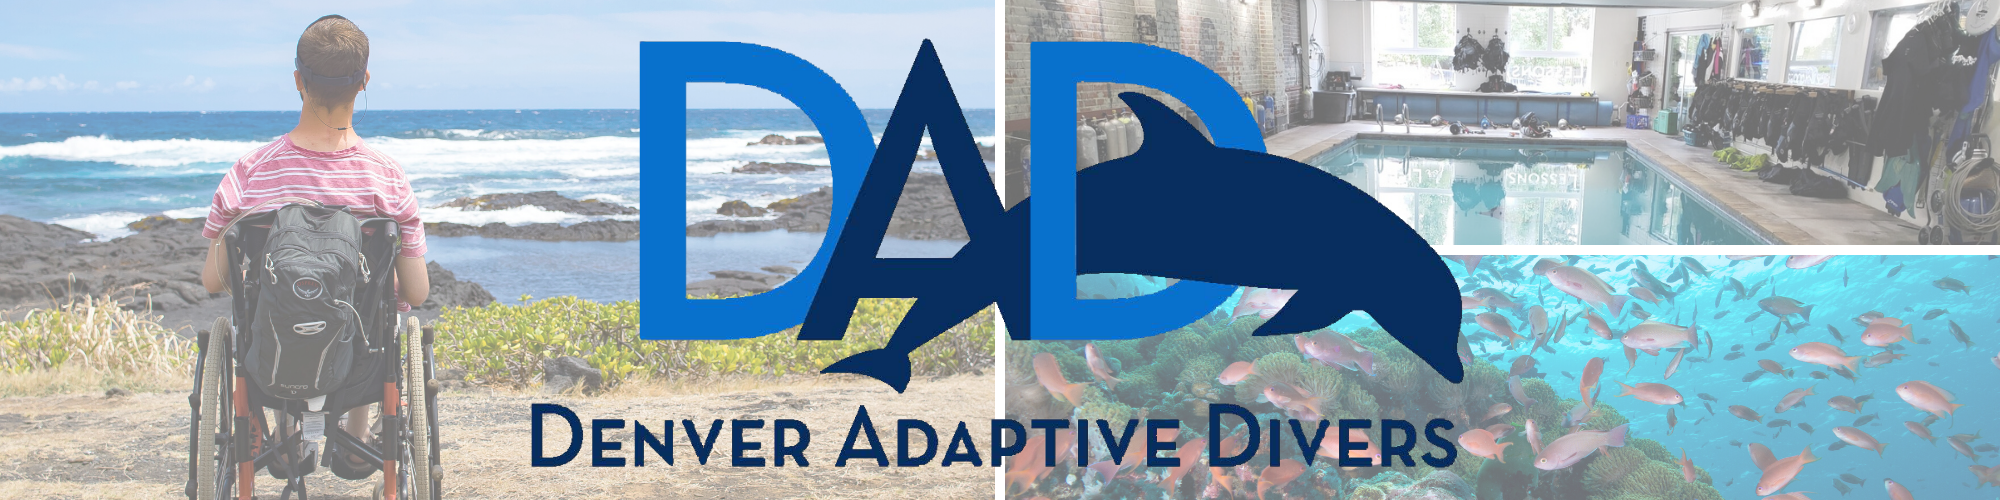 Denver Adaptive Divers